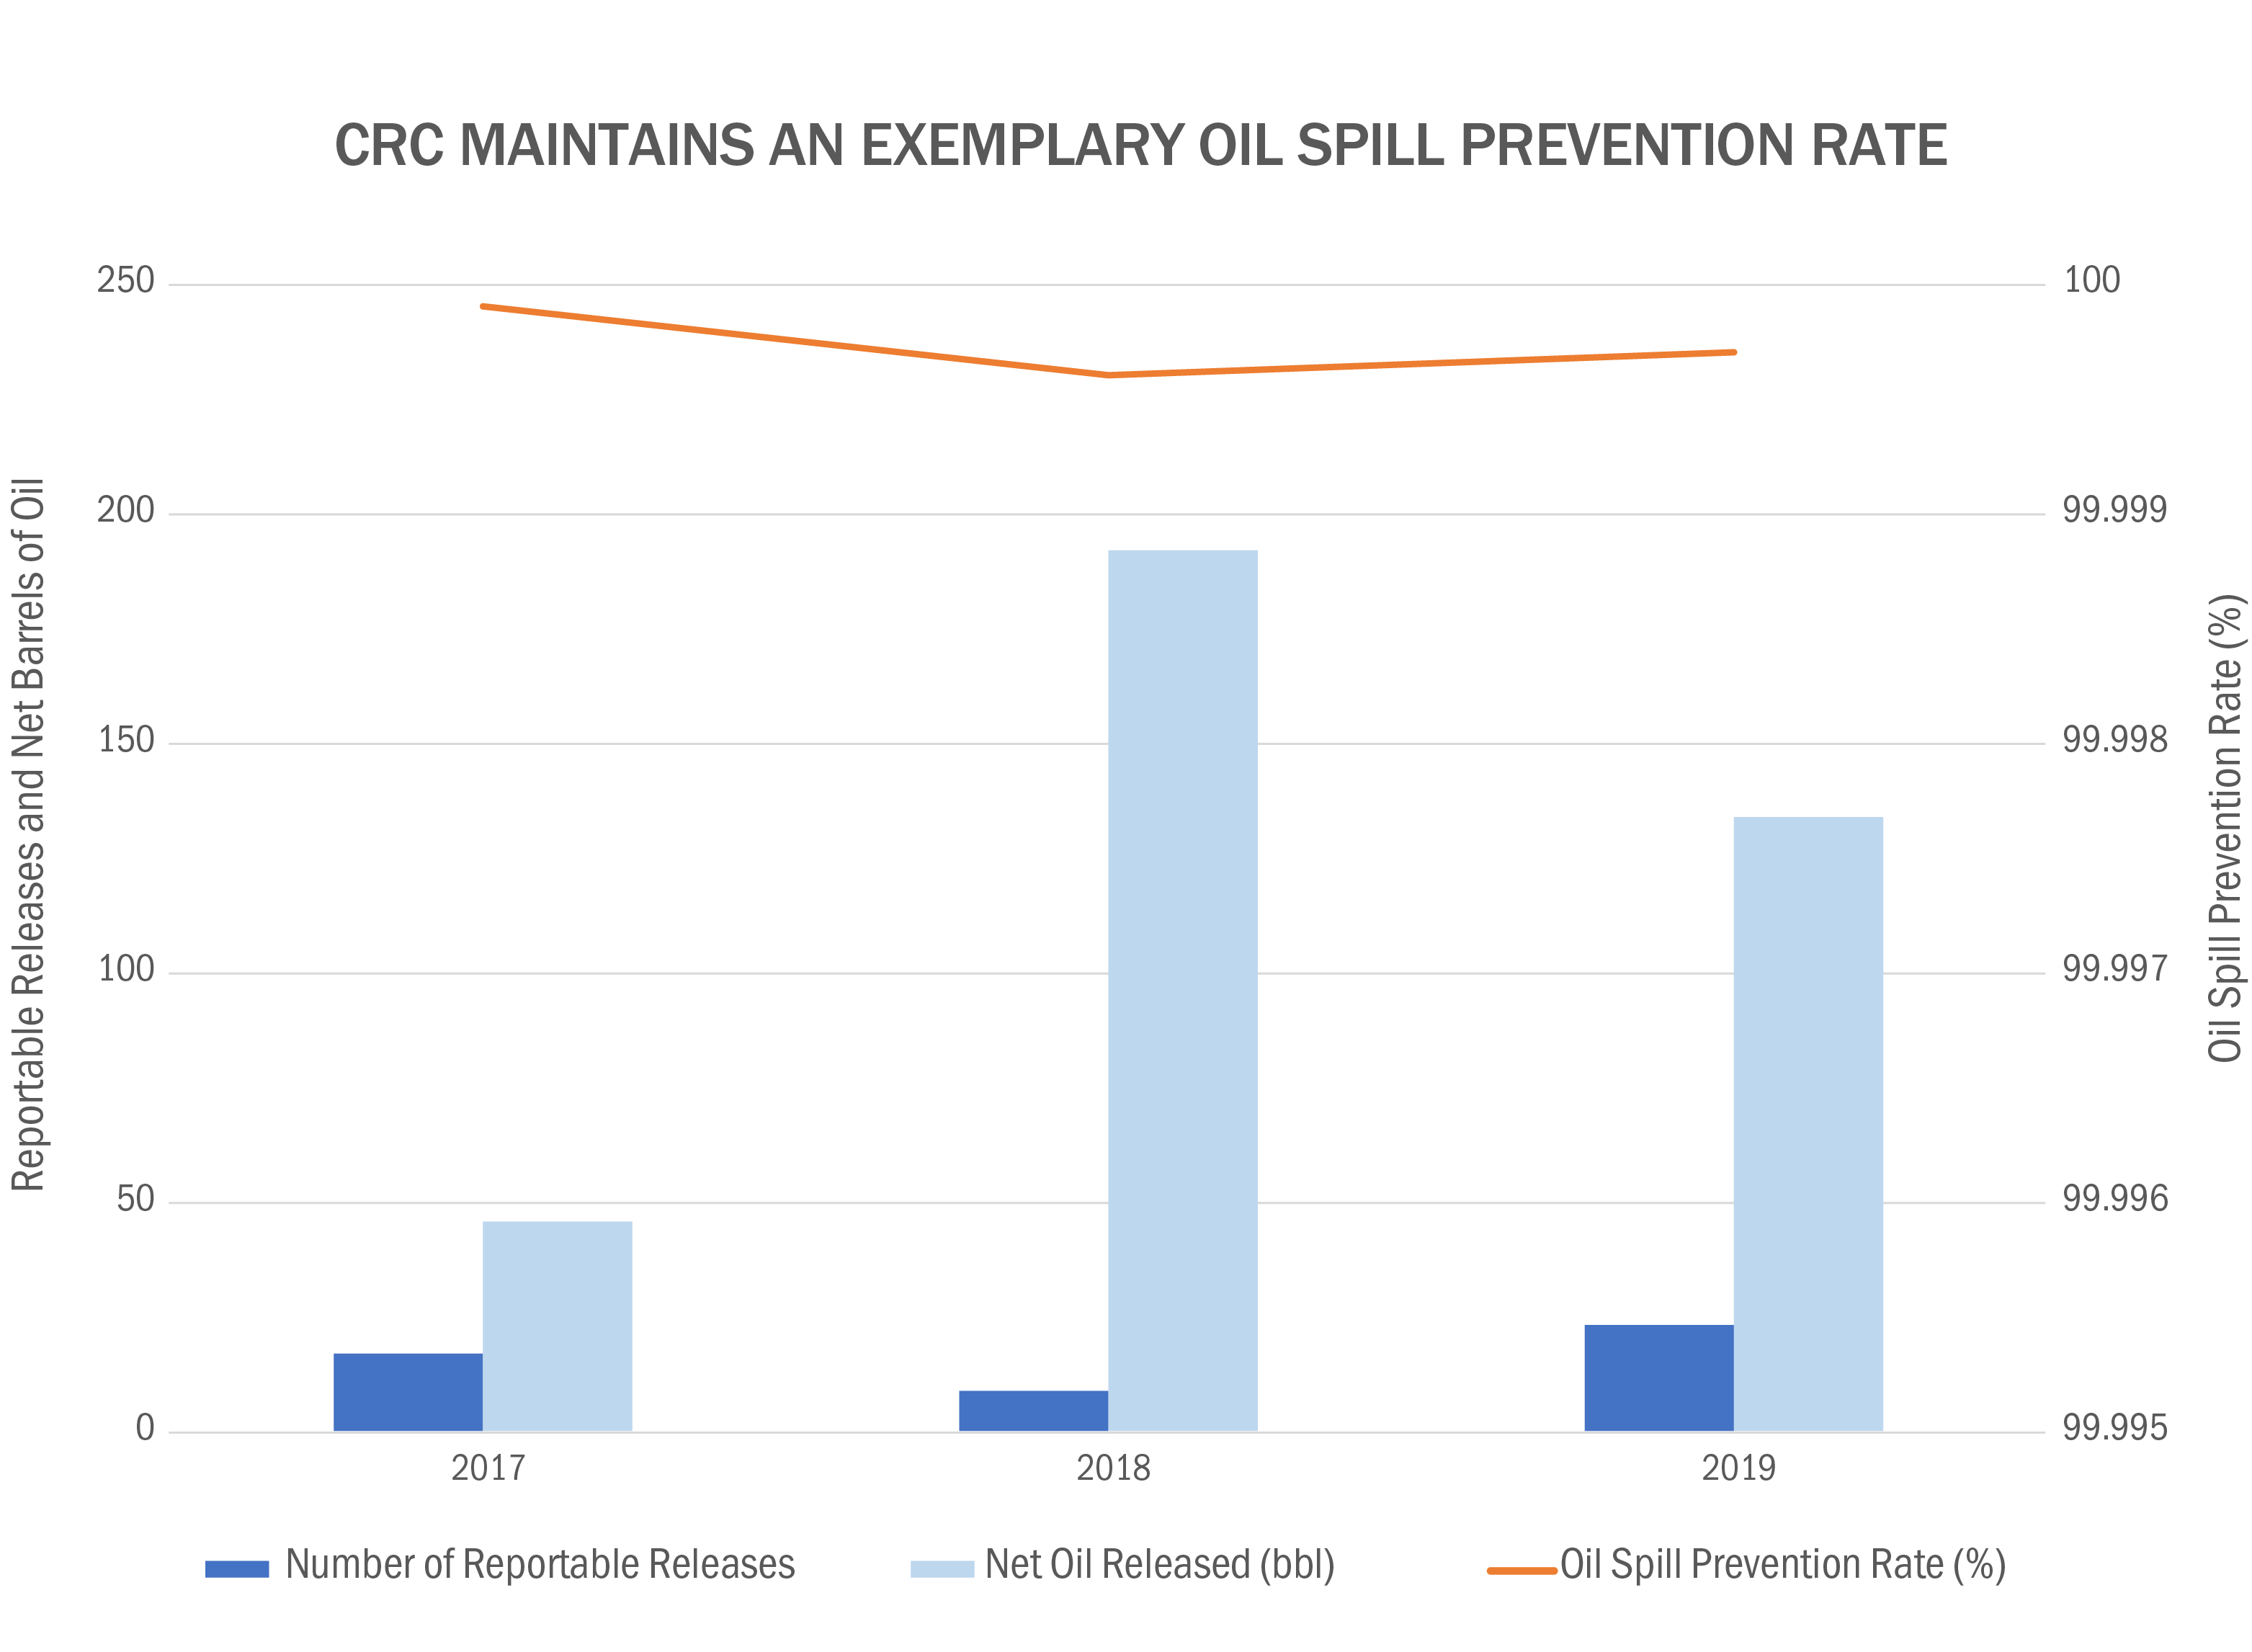 CRC Maintains an Expemplary Oil Spill Prevention Rate